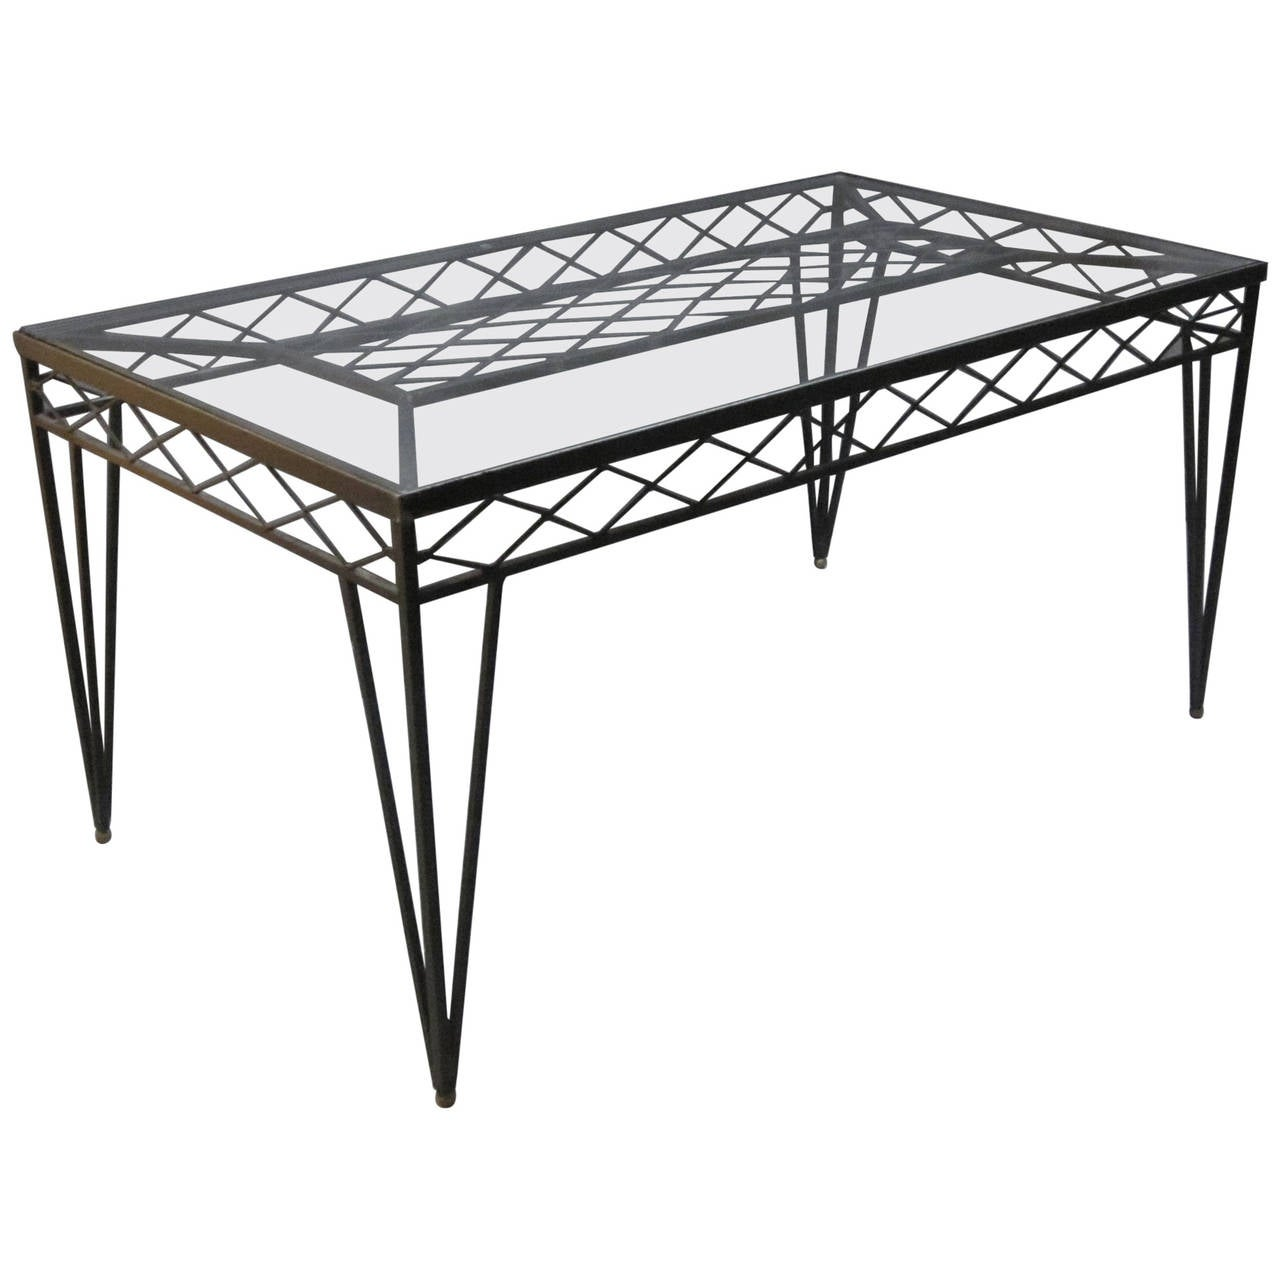 Circa 1940s Wrought Iron Rectangular Dining Table France For Sale At 1stdibs